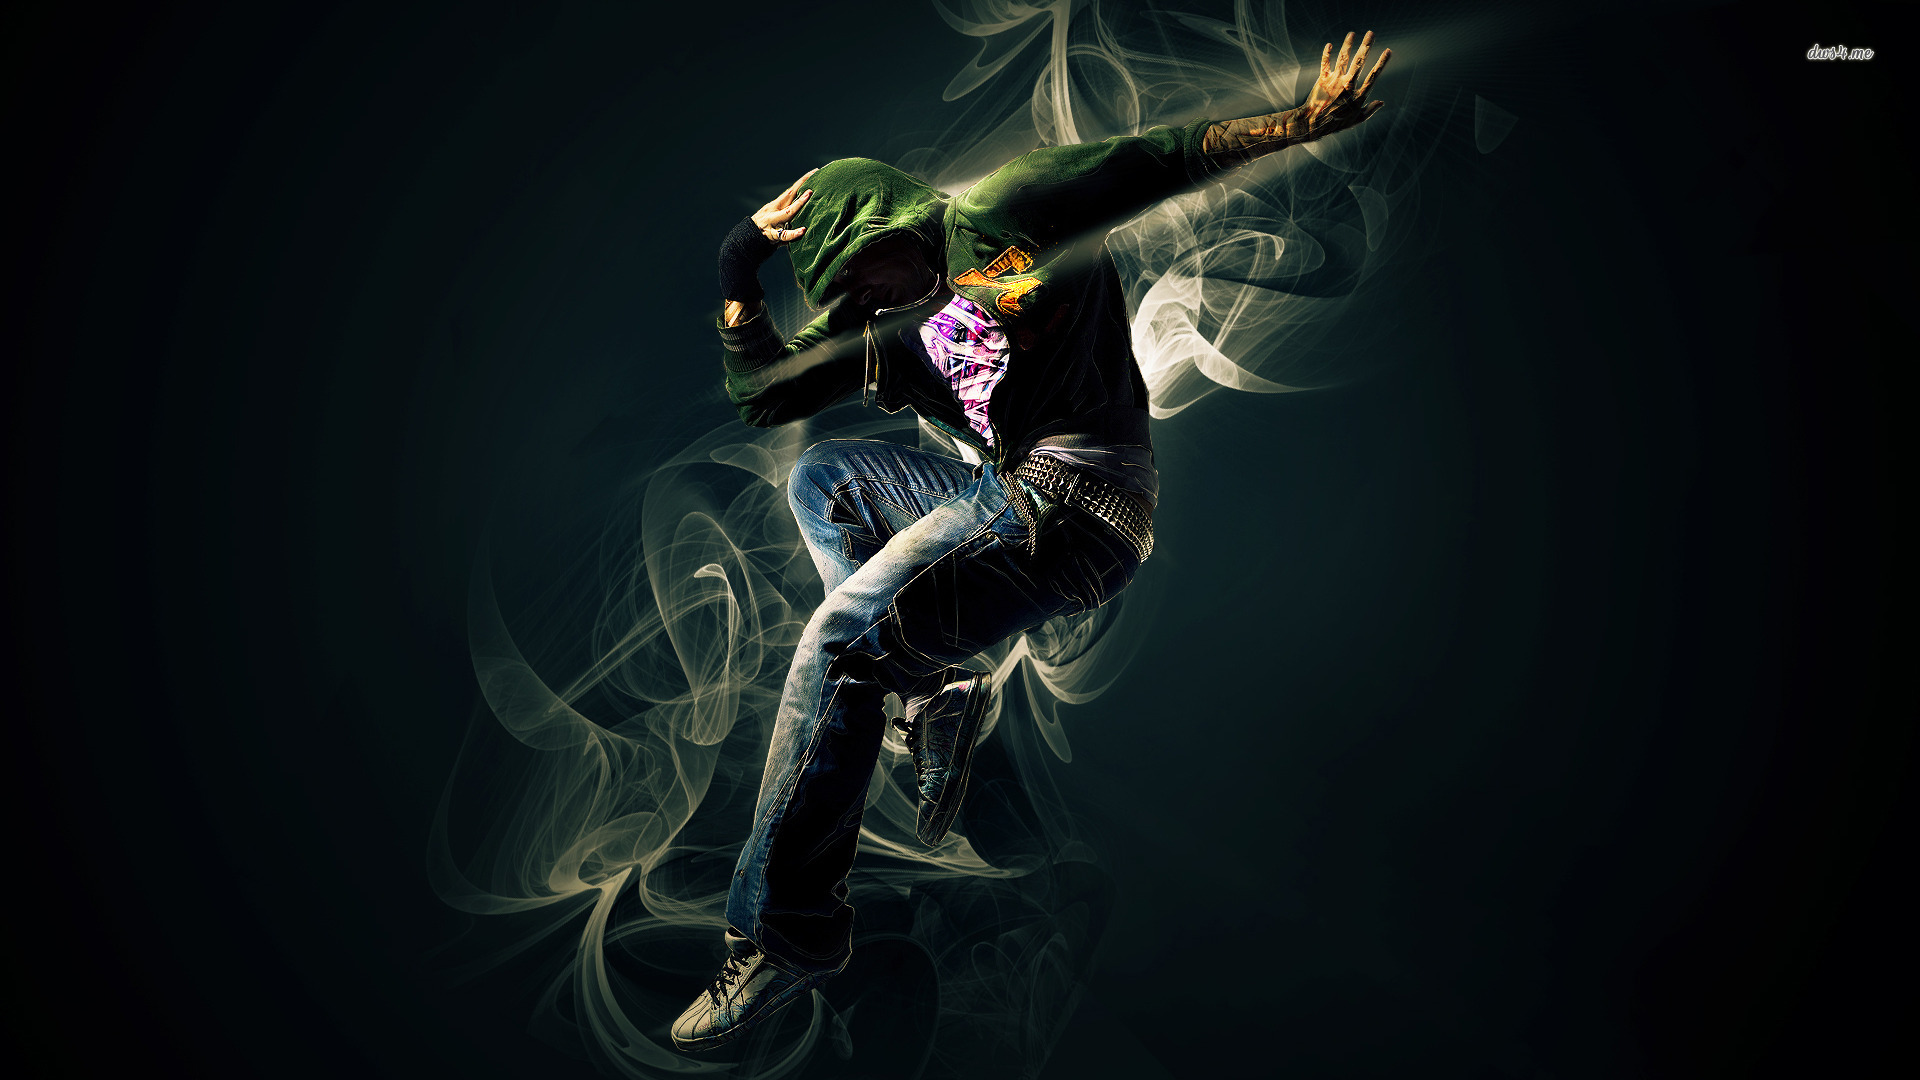 Wallpaper Of Dance Posted By Ethan Peltier